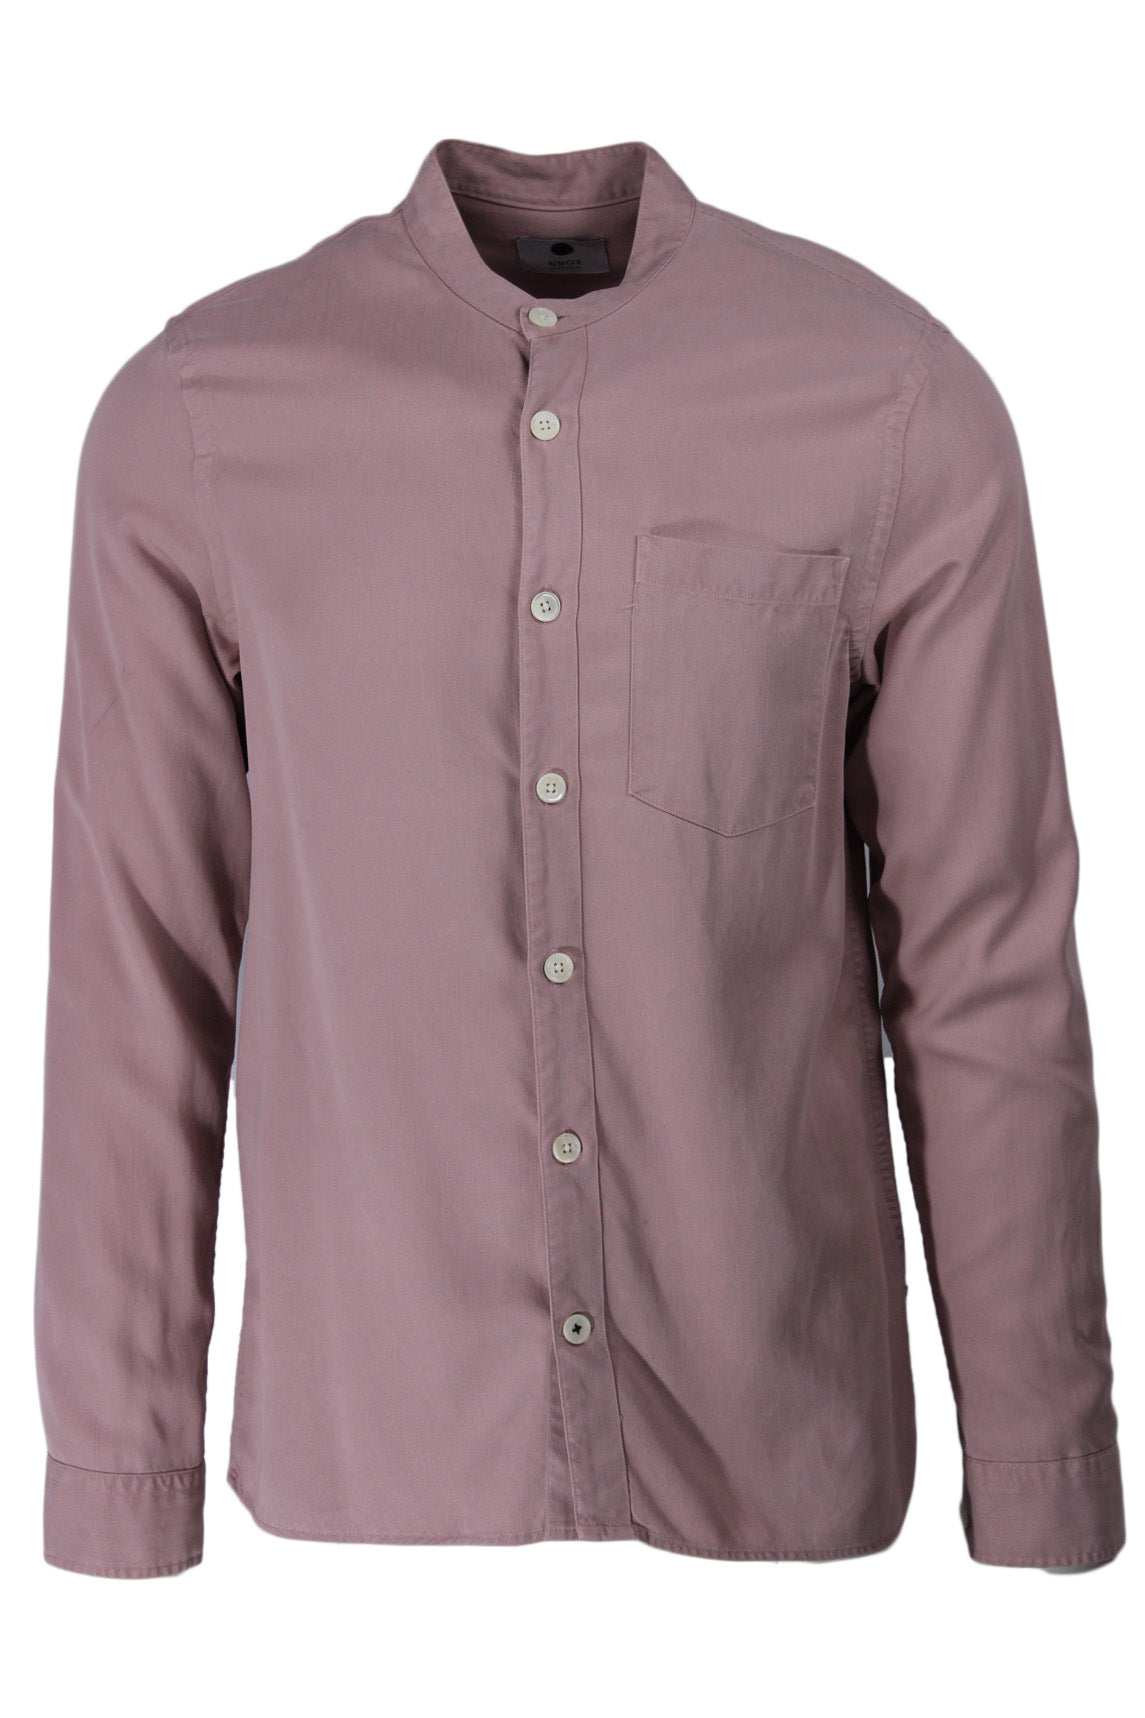 nn07 dusty rose long sleeve 'gustave' collarless shirt. features logo tab at left side of hem with pocket at left breast.